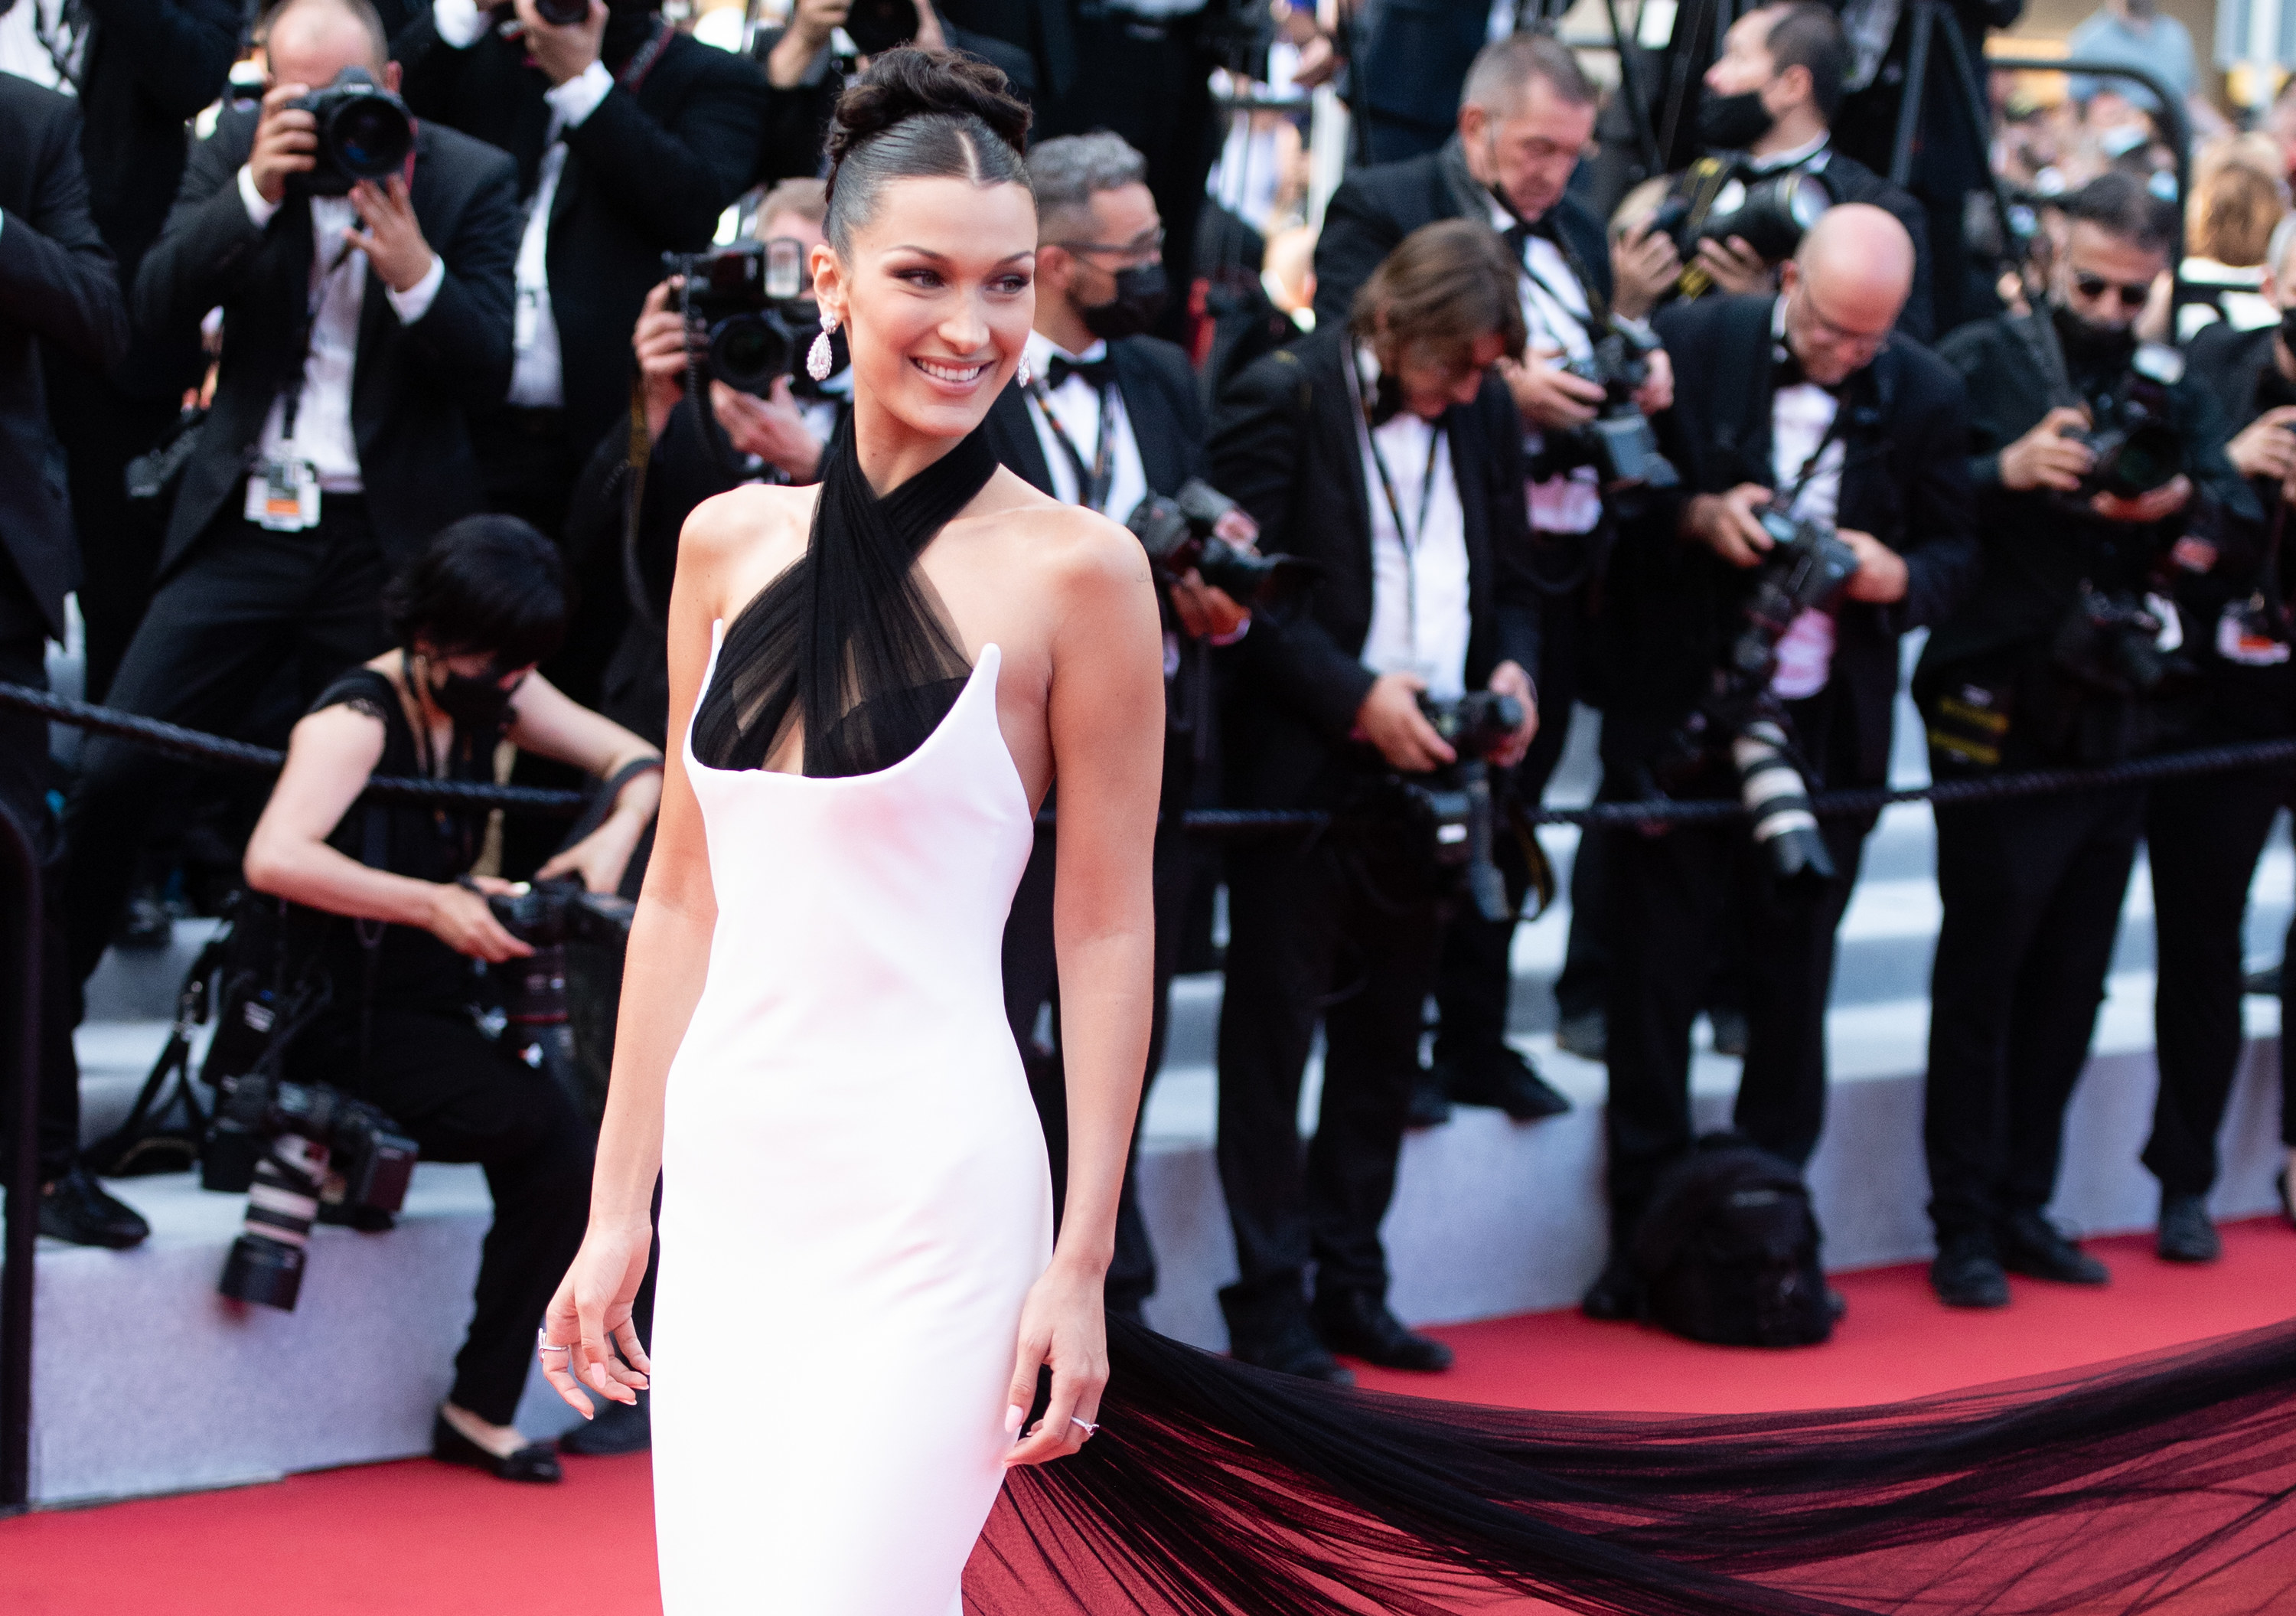 Bella Hadid is photographed smiling on the red carpet at the Cannes Film Festival in 2021